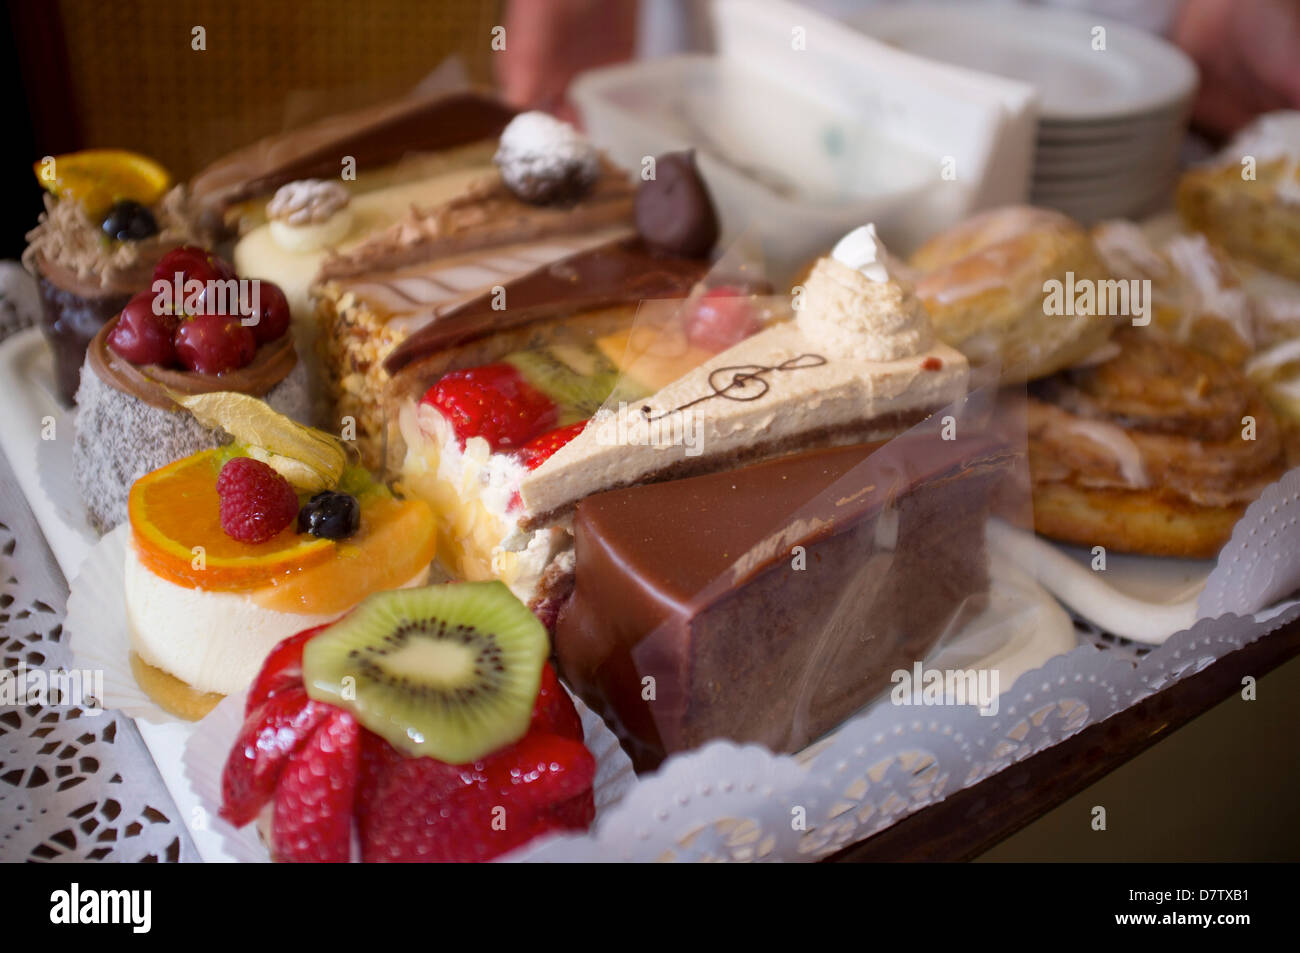 A pastry tray at Cafe Tomaselli, Altstadt, Salzburg, Austria - Stock Image